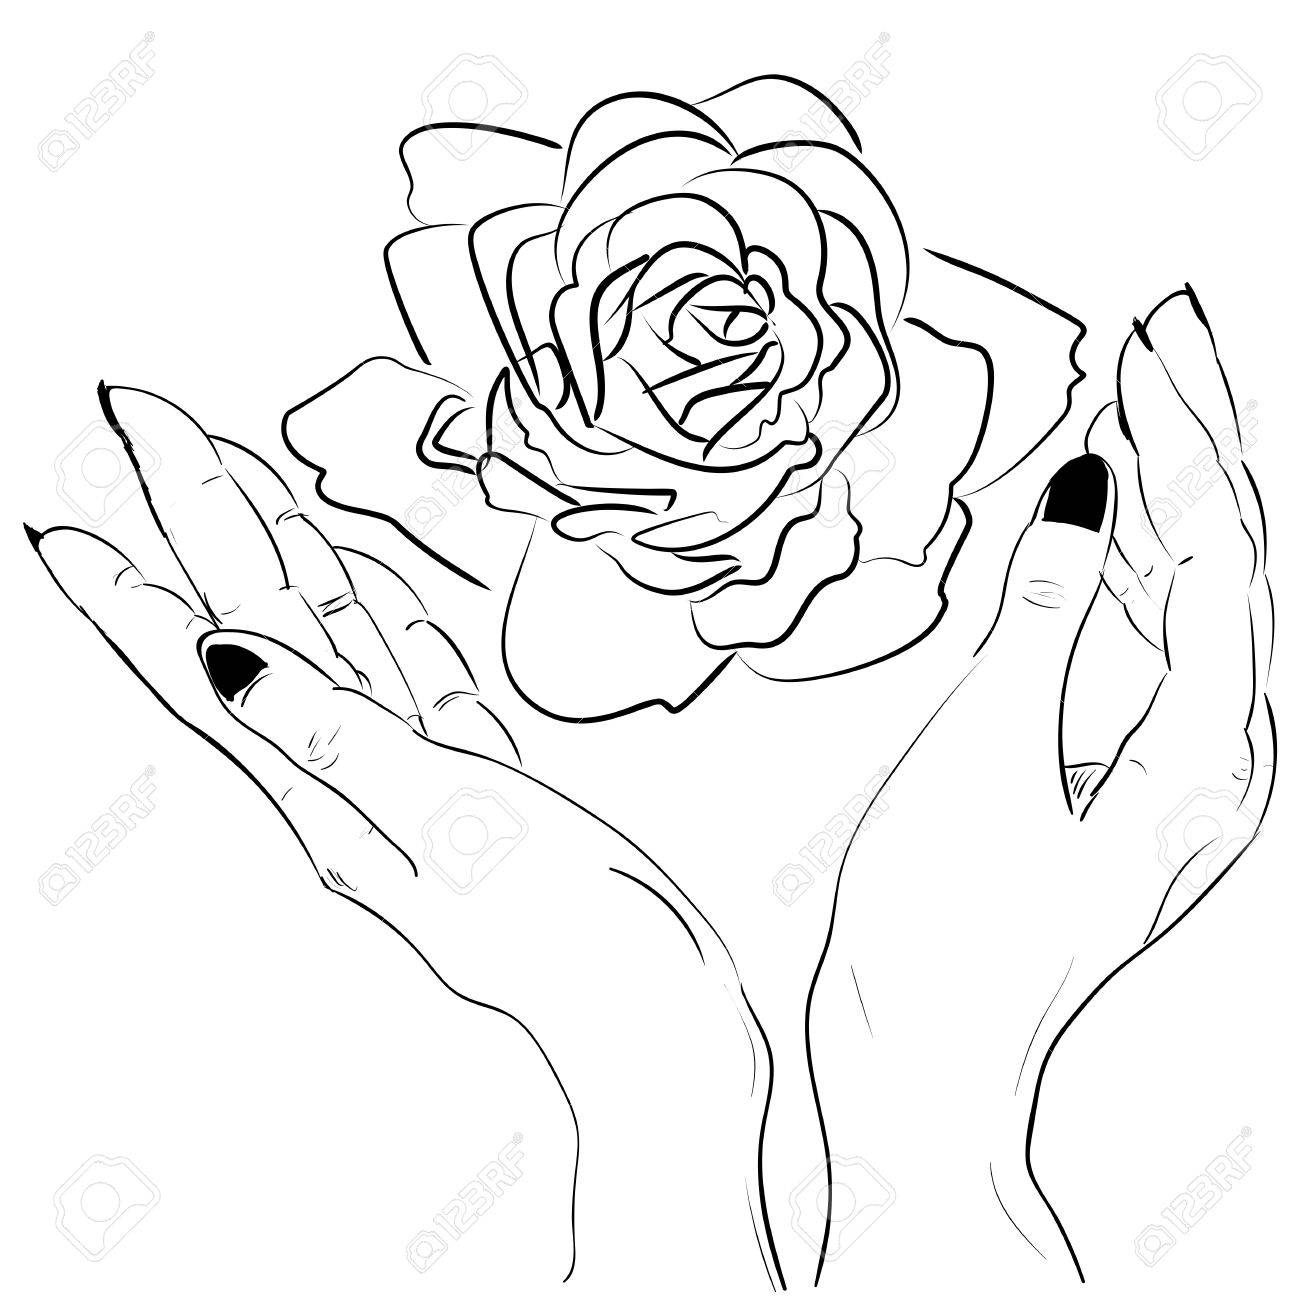 Hands Holding A Rose Flower Isolated Outline Hand Drawn Sketch